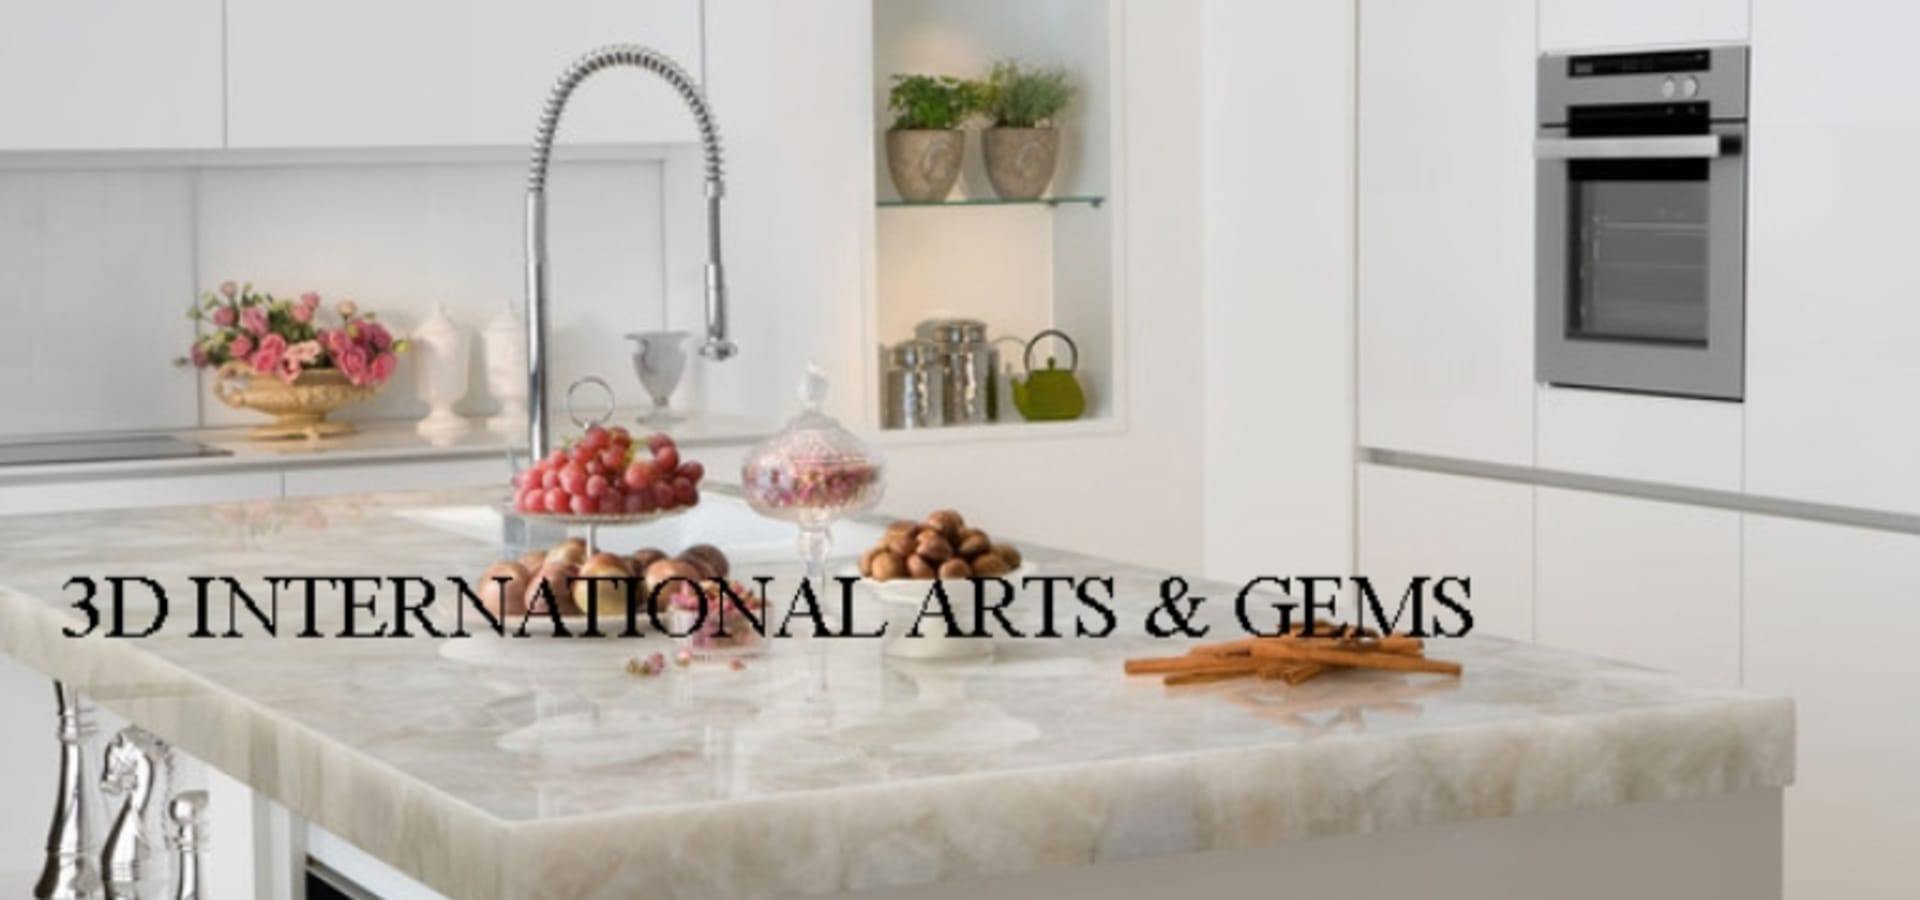 3D International Arts & Gems